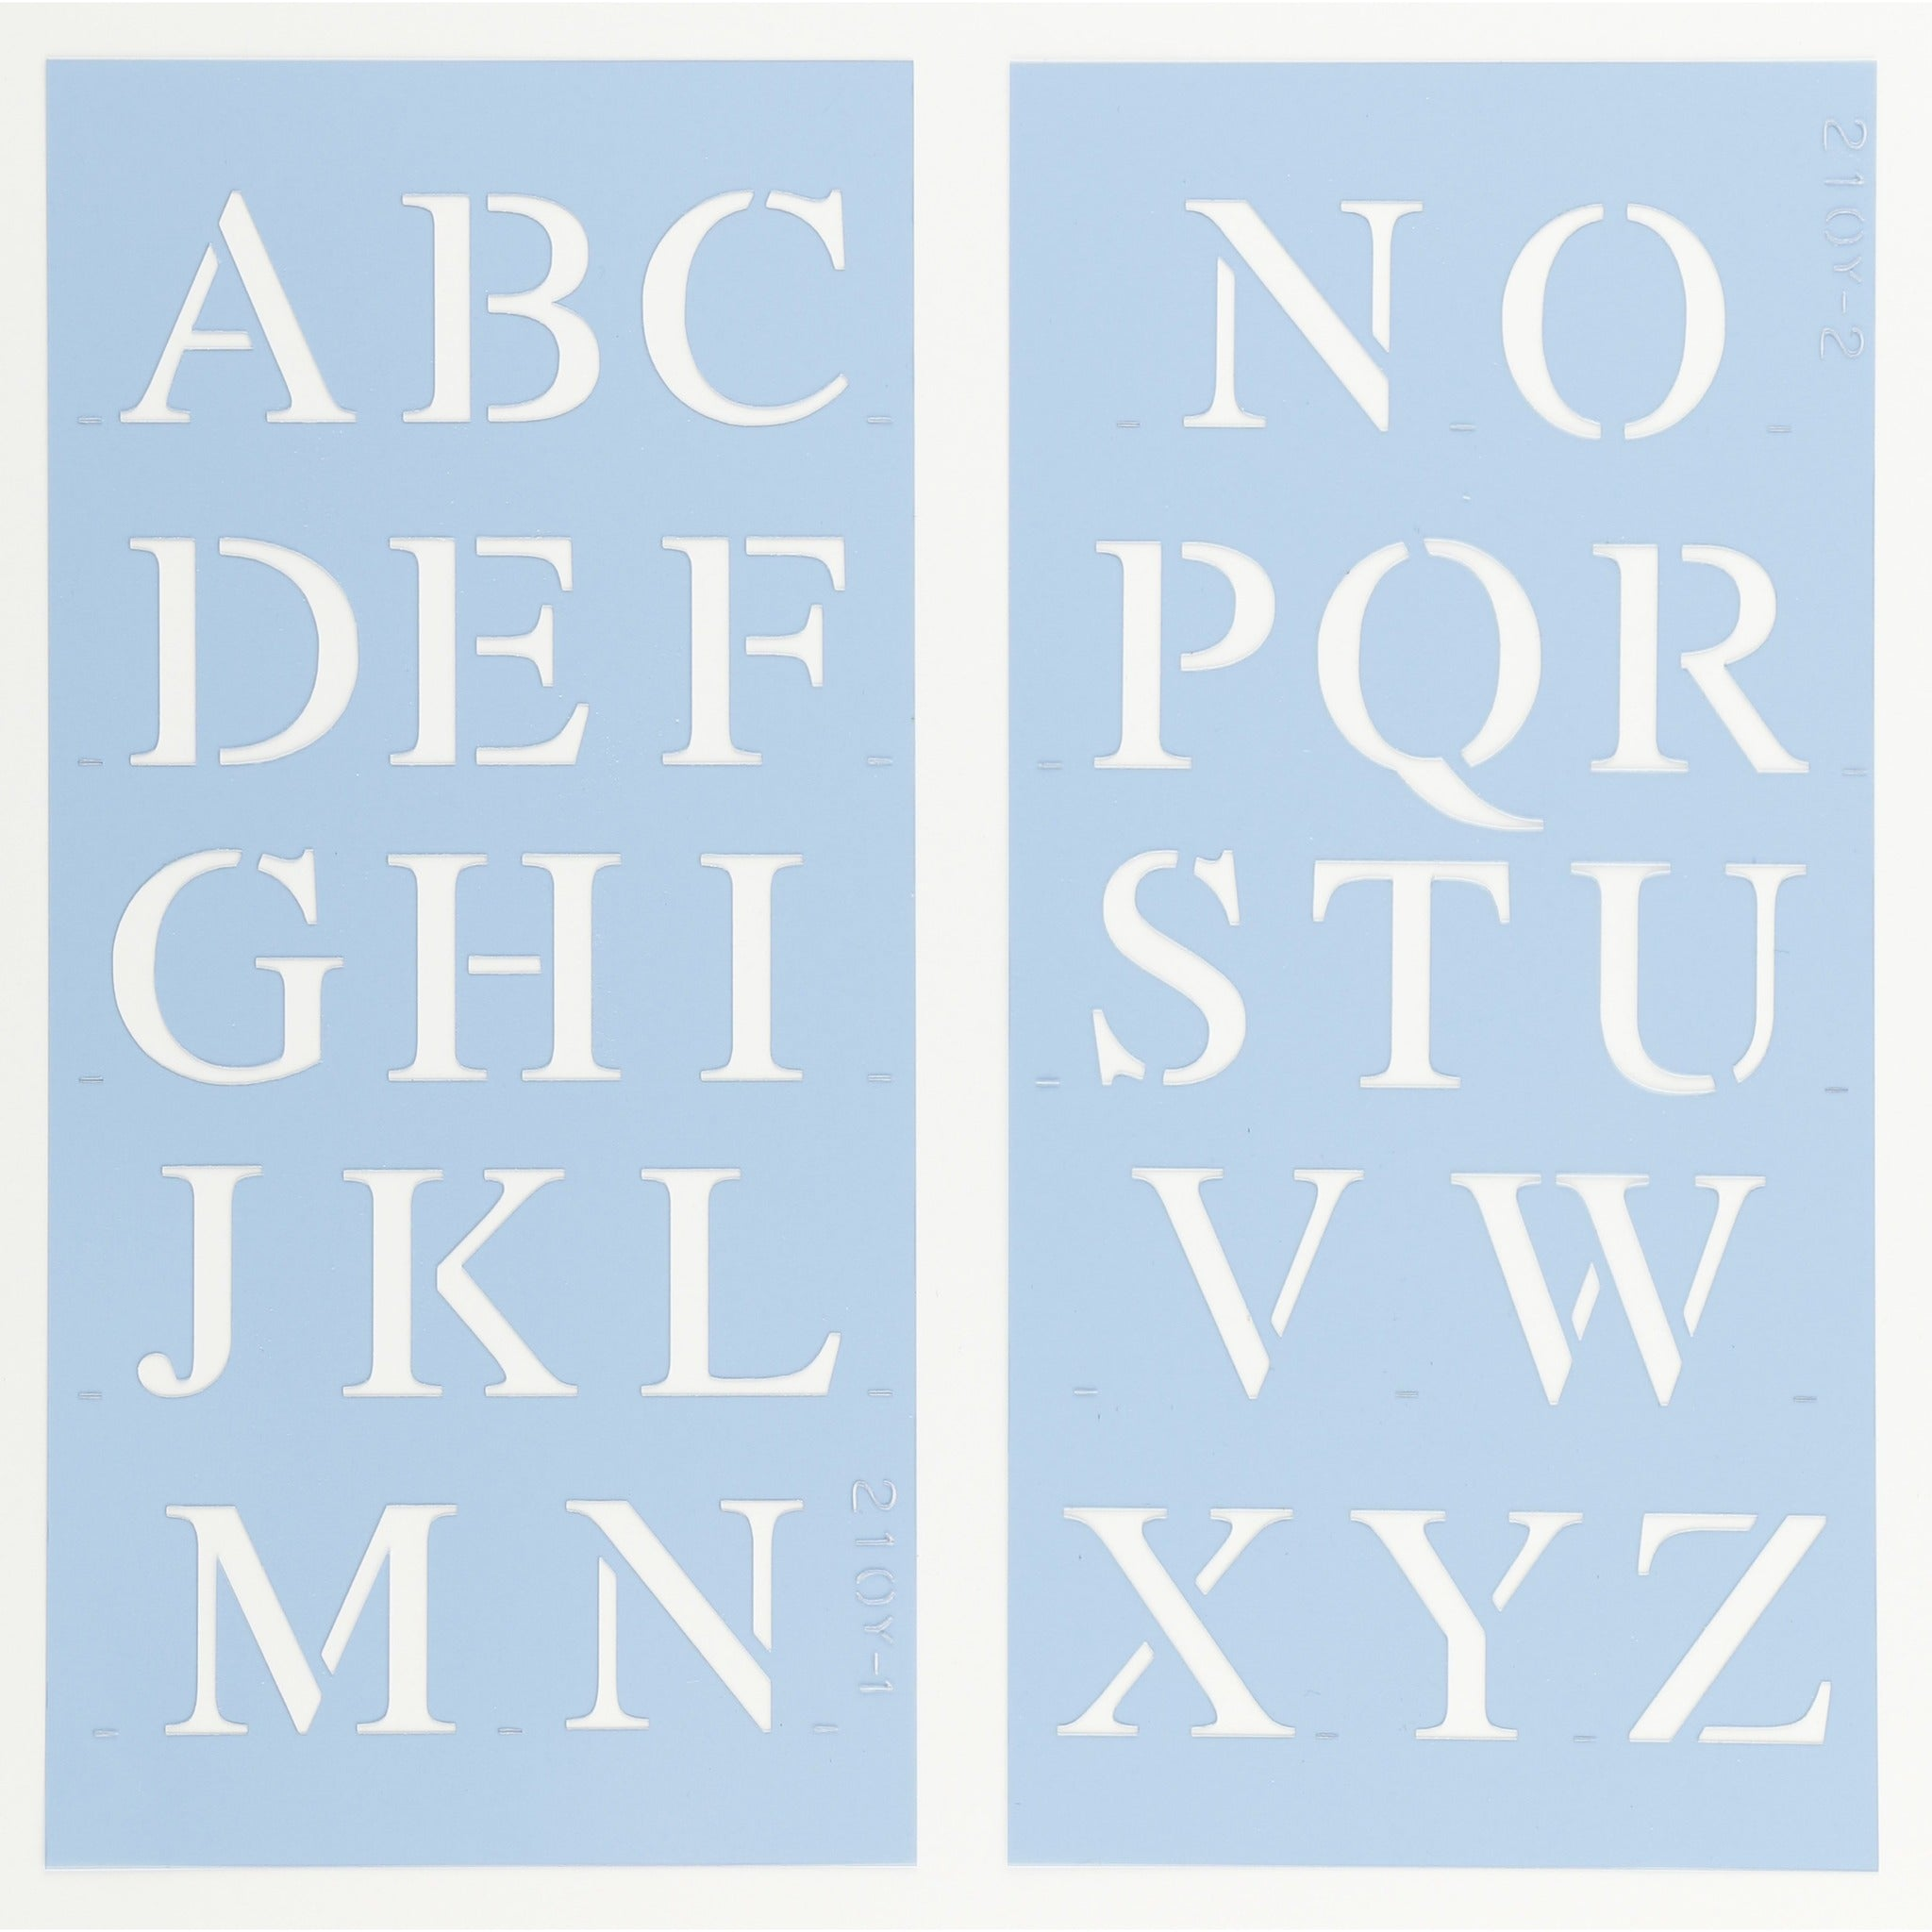 Times New Roman Letter & Number Stencil Set